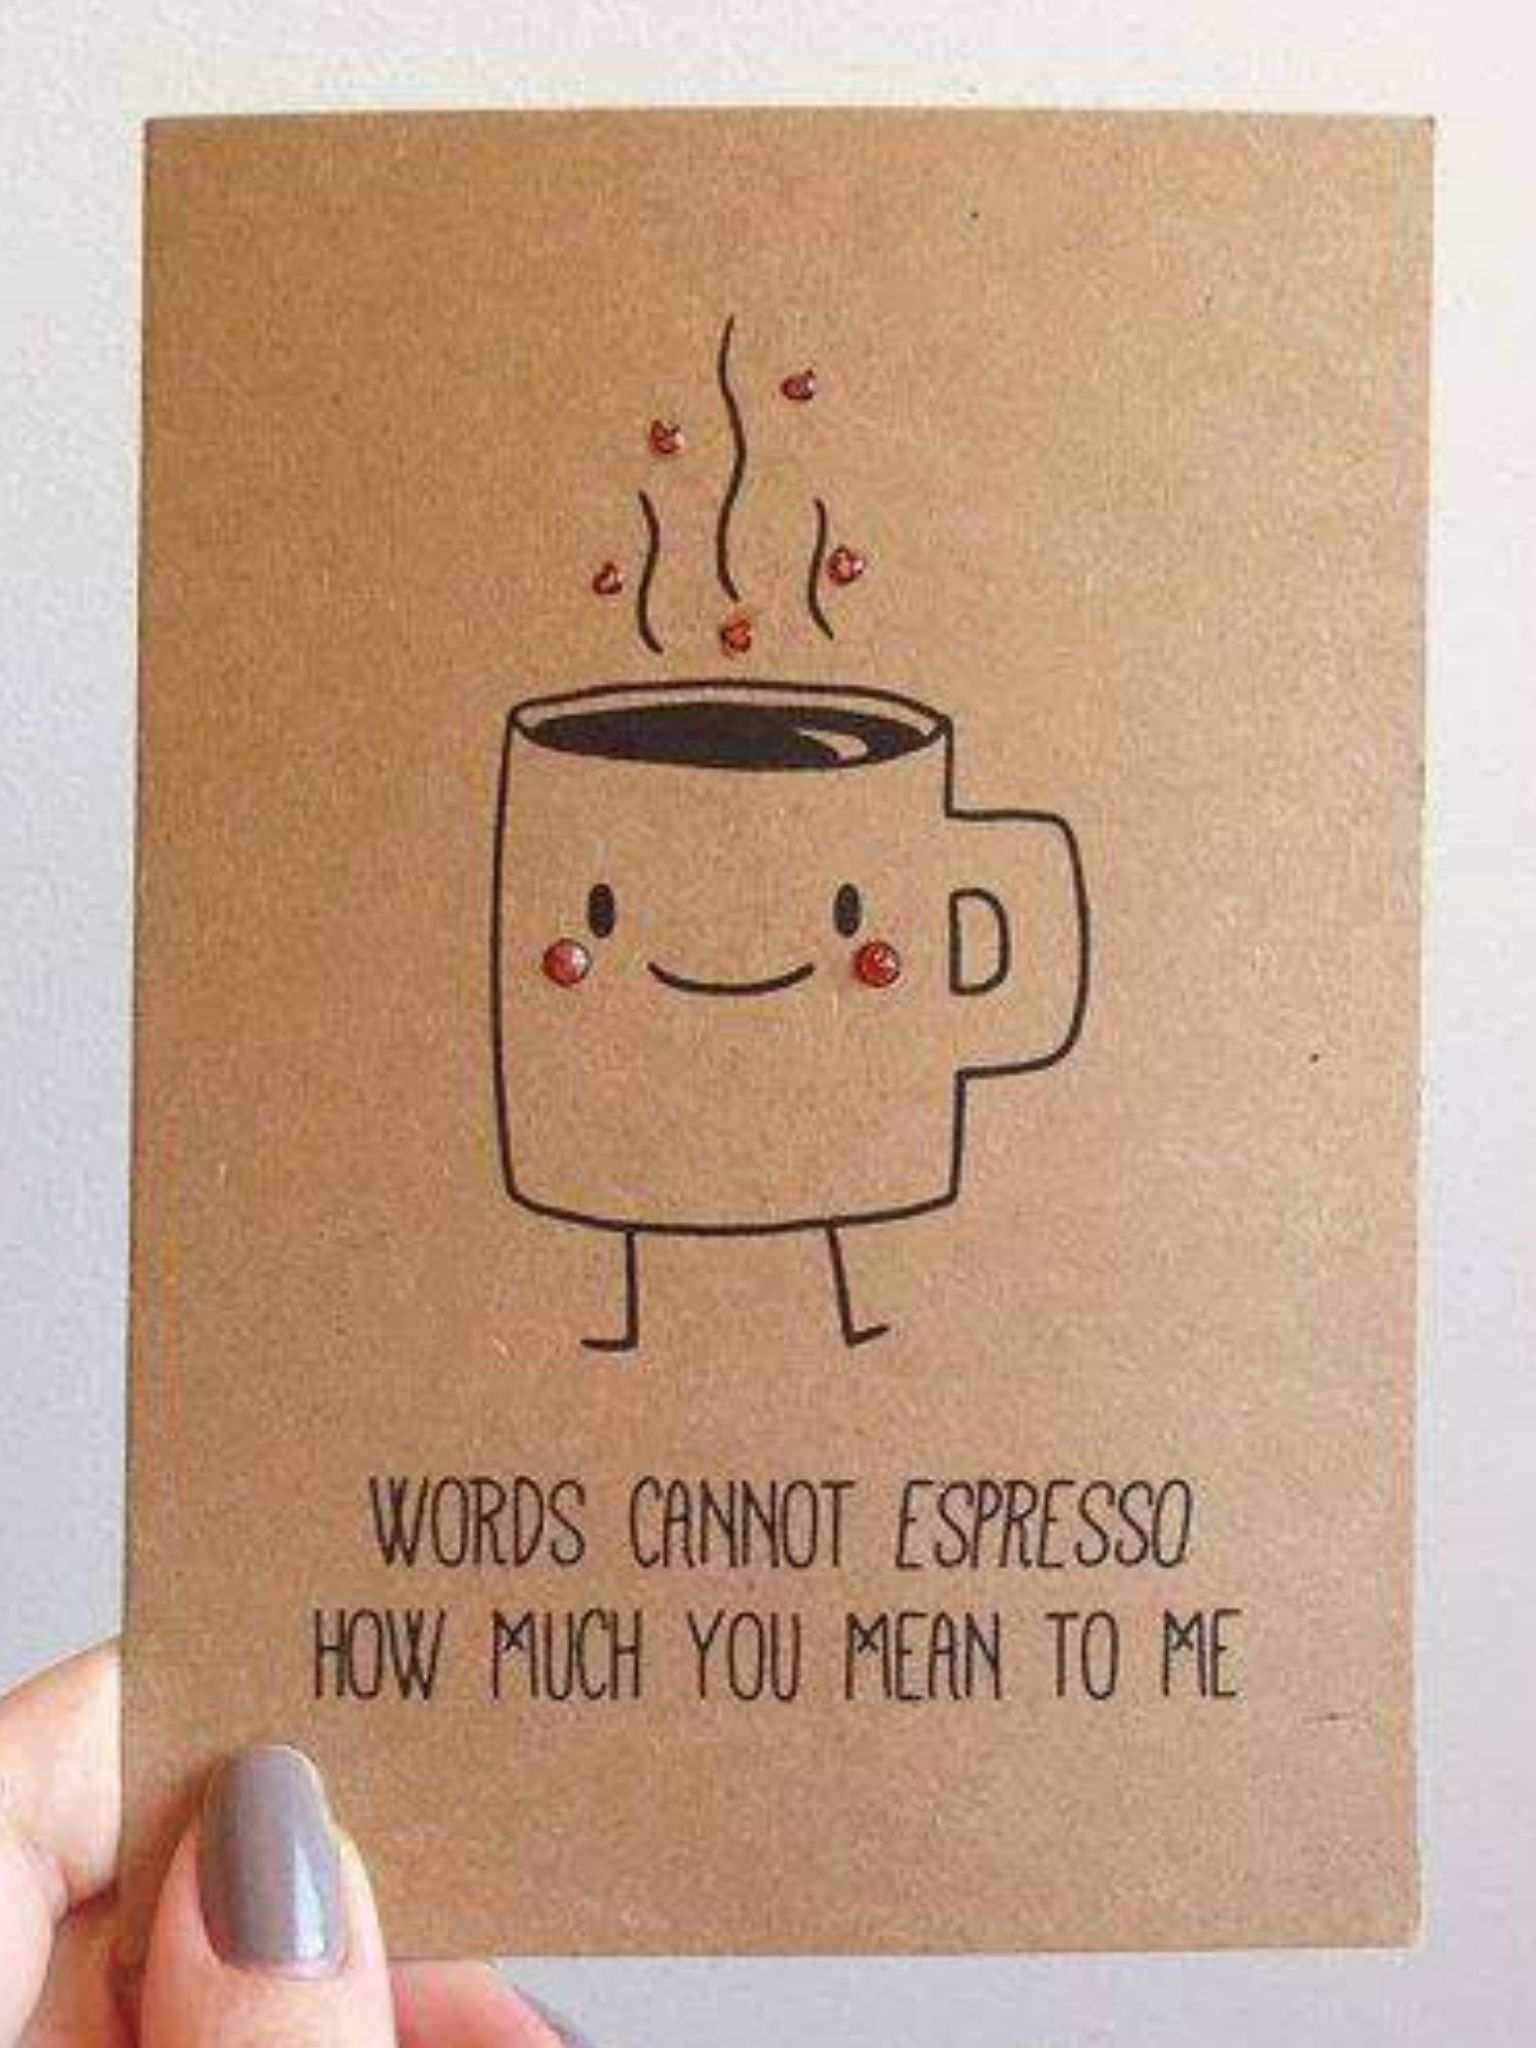 Take Out How Words Cannot Espresso Much You Mean To Me Art